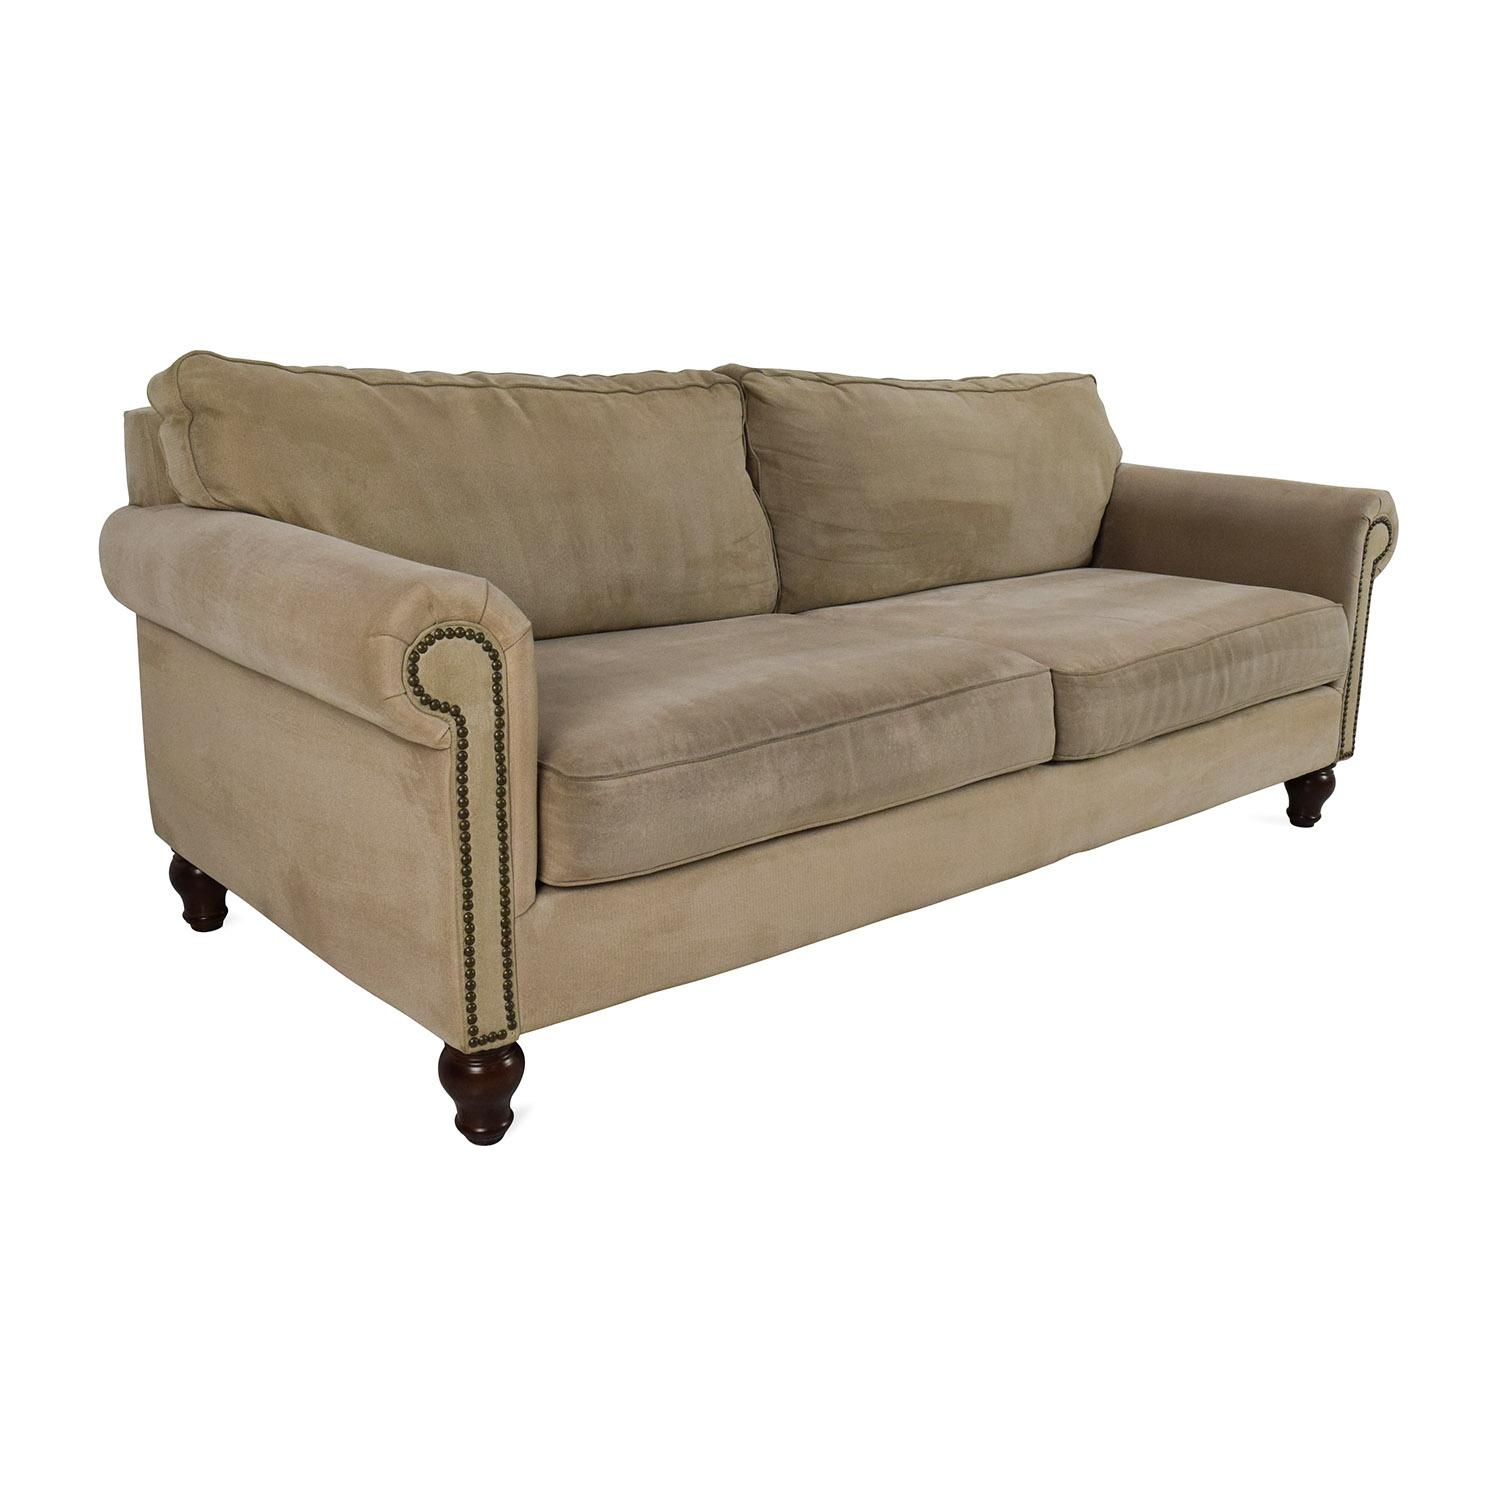 Pier 1 sofa warranty for Sofa 1 80 largura